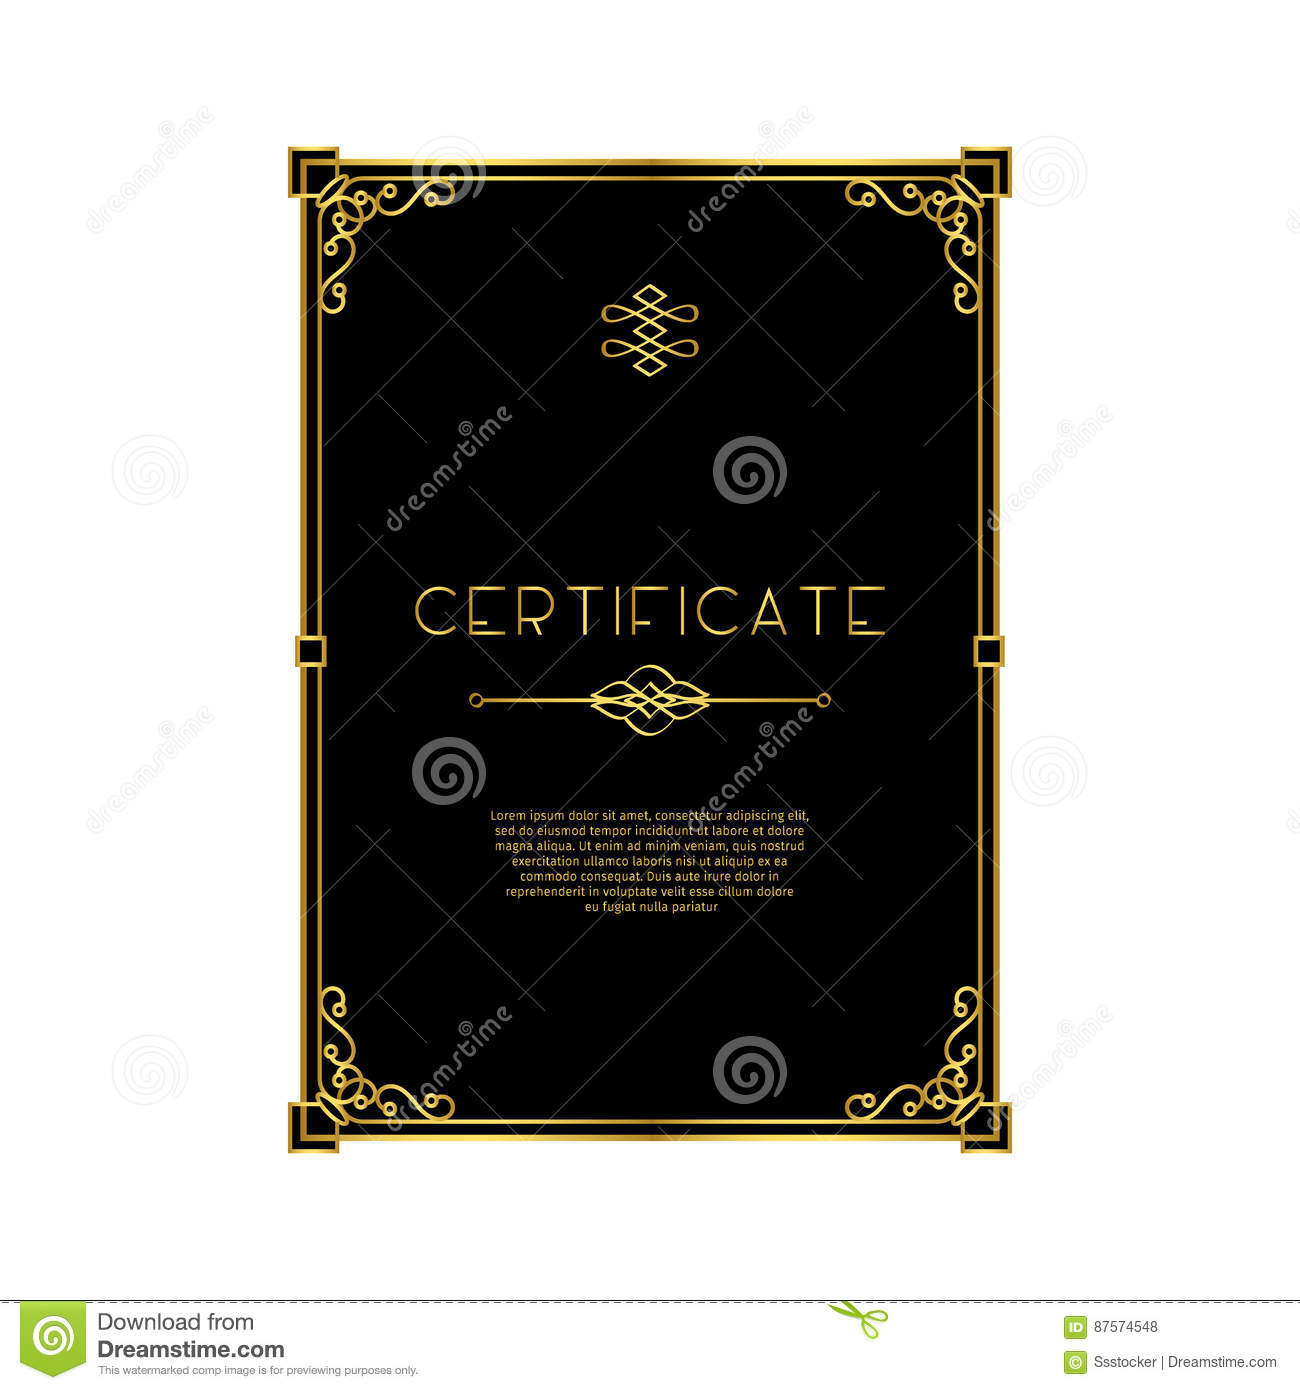 Reiki certificate template free choice image templates example free reiki certificate templates gallery templates example free reiki certificate template vector choice image certificate reiki yelopaper Images